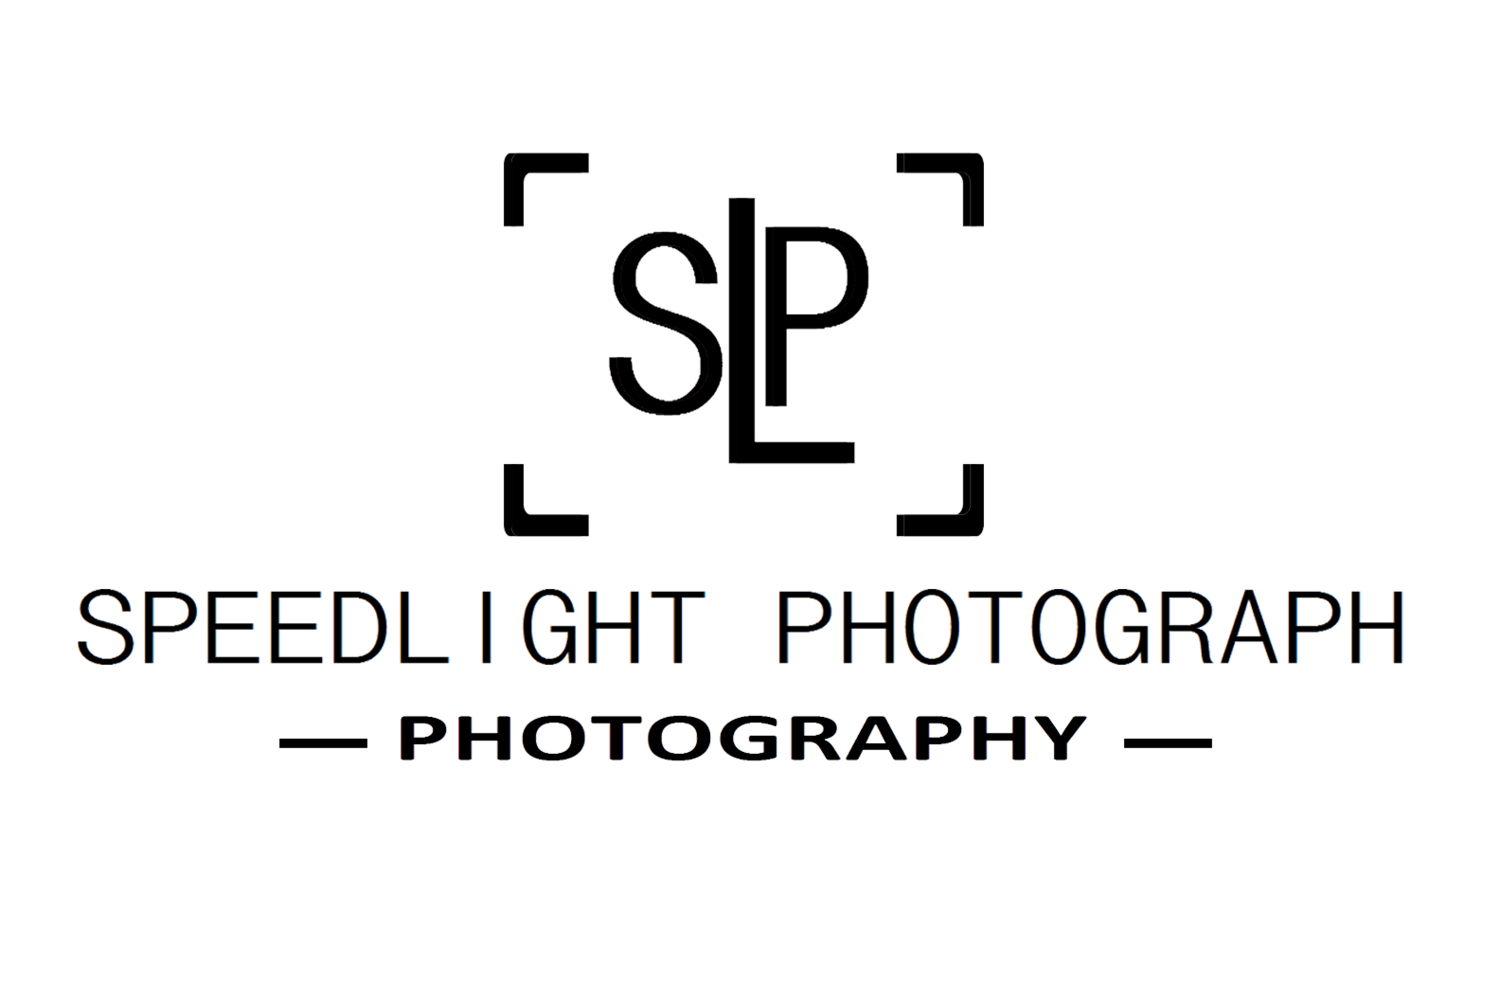 Speedlight Photograph